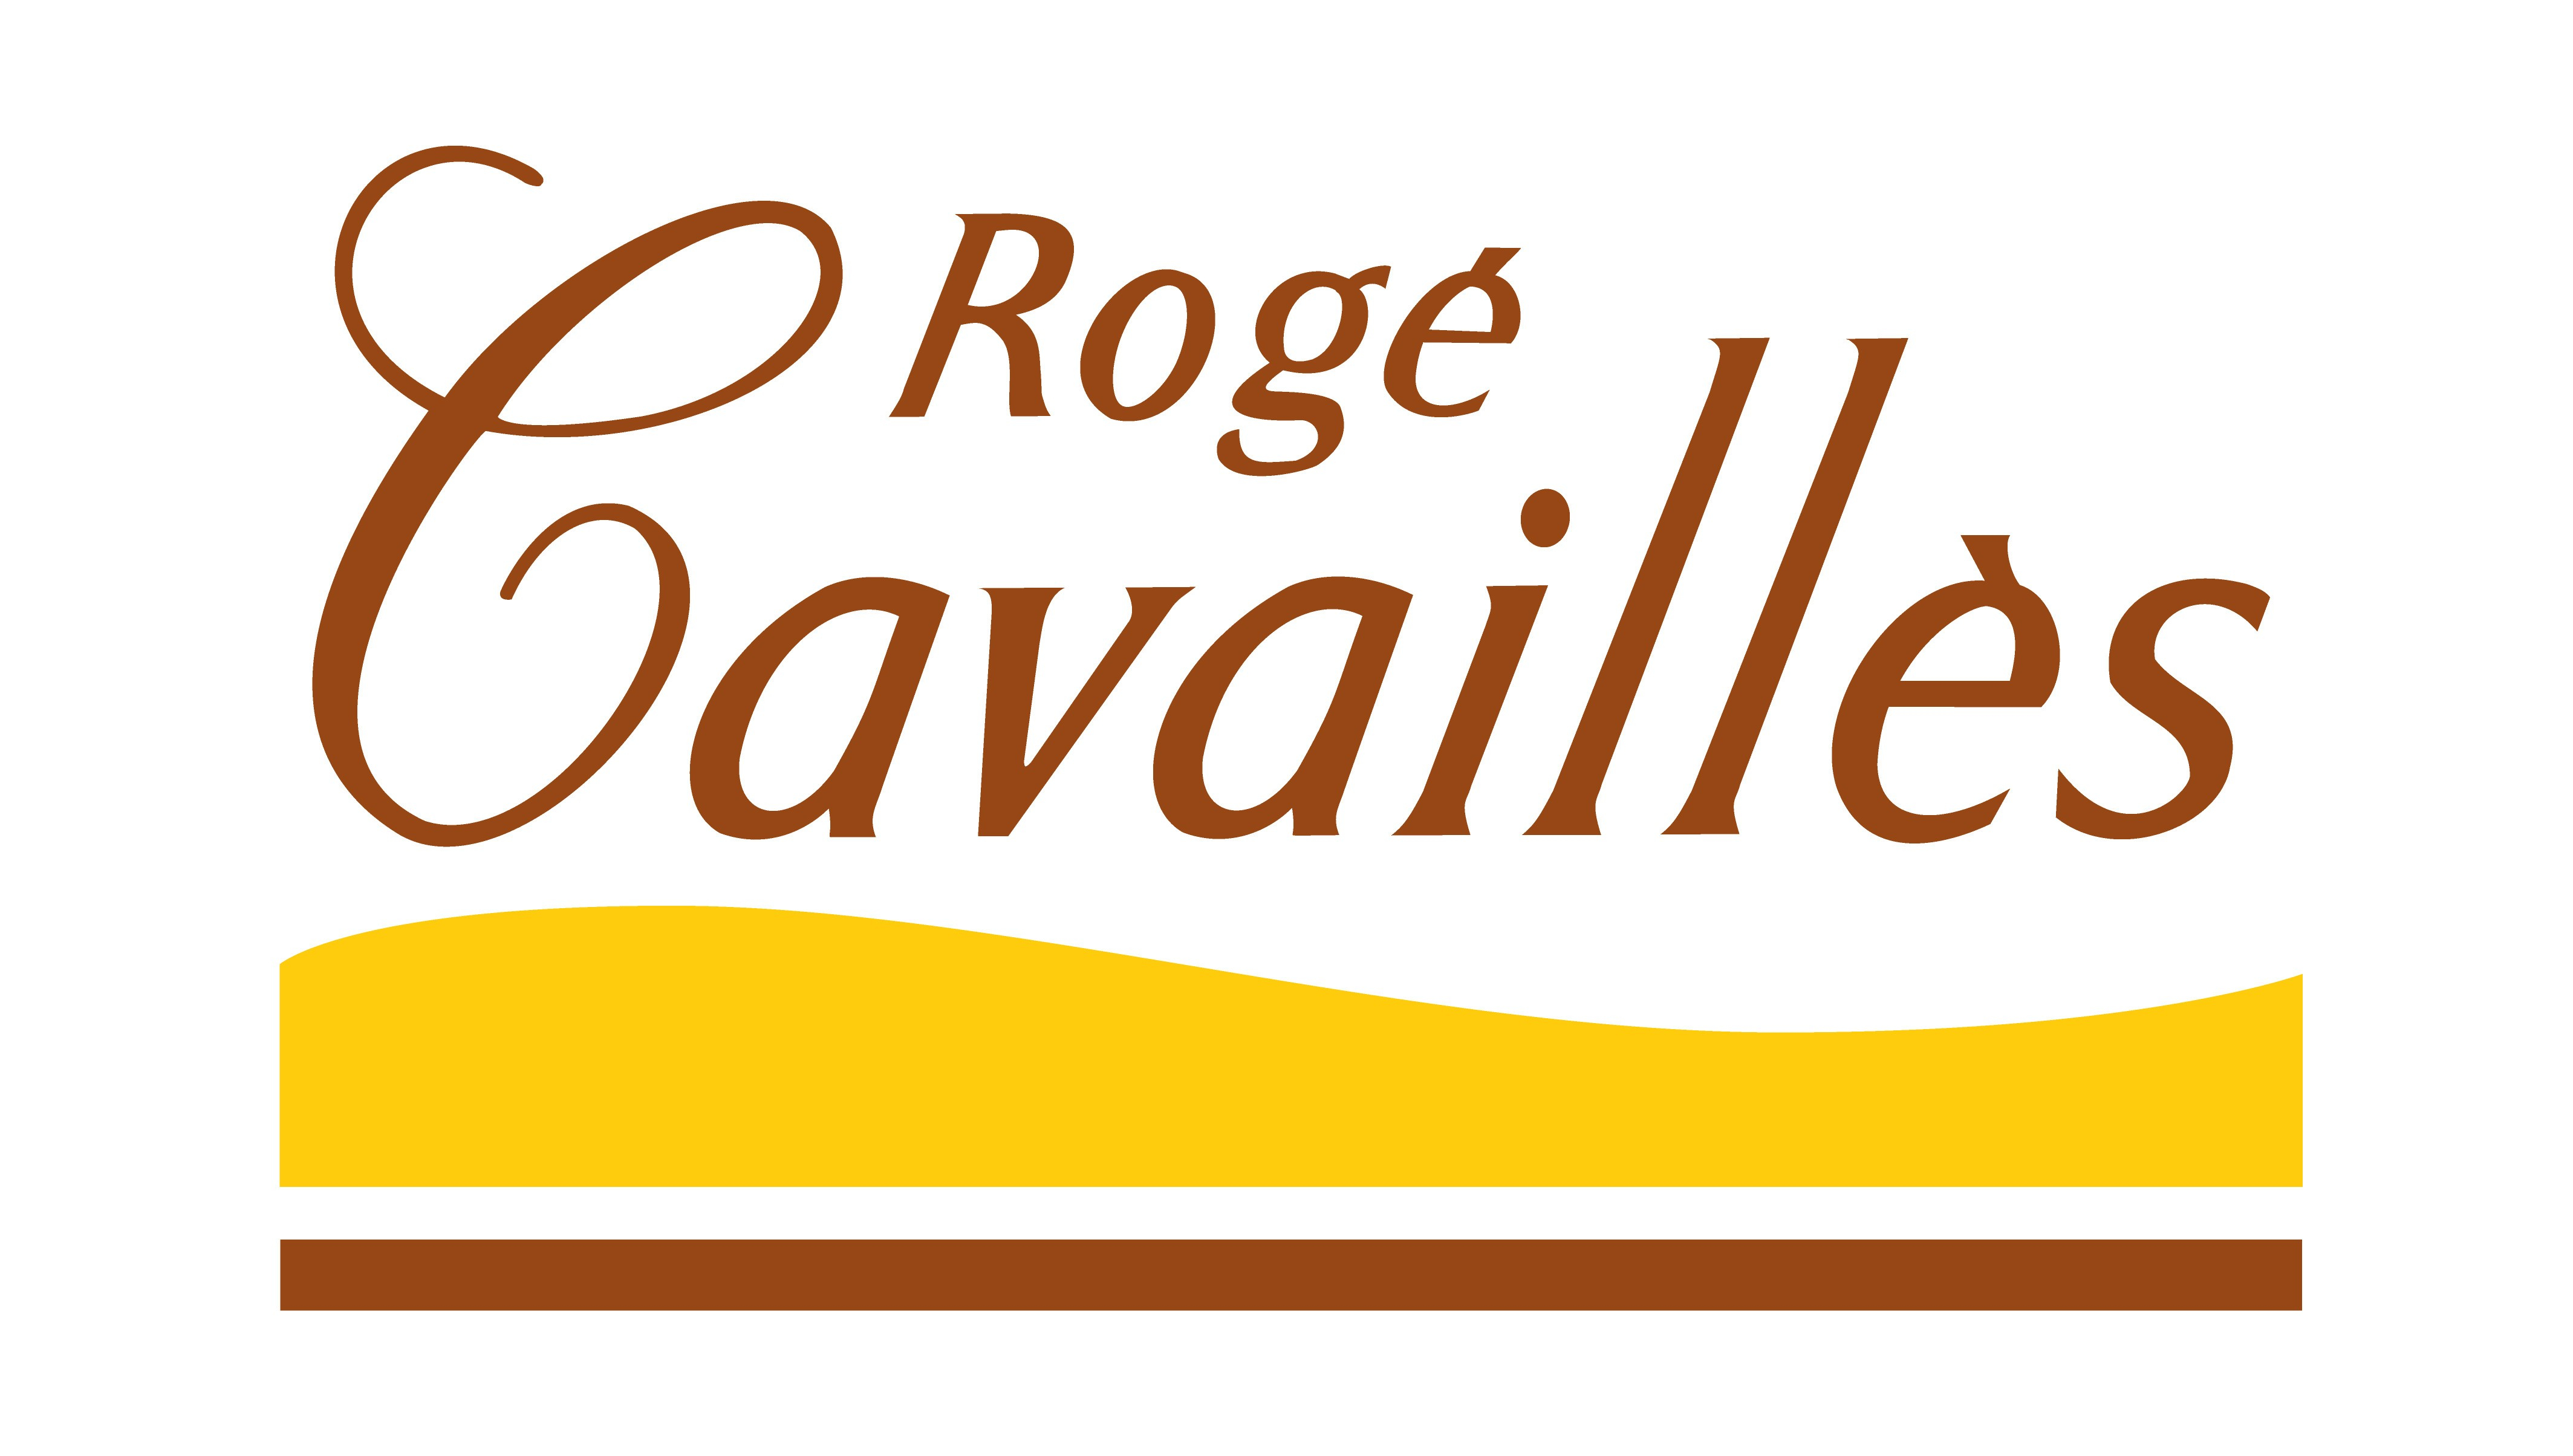 Productos Roge Cavailles width=